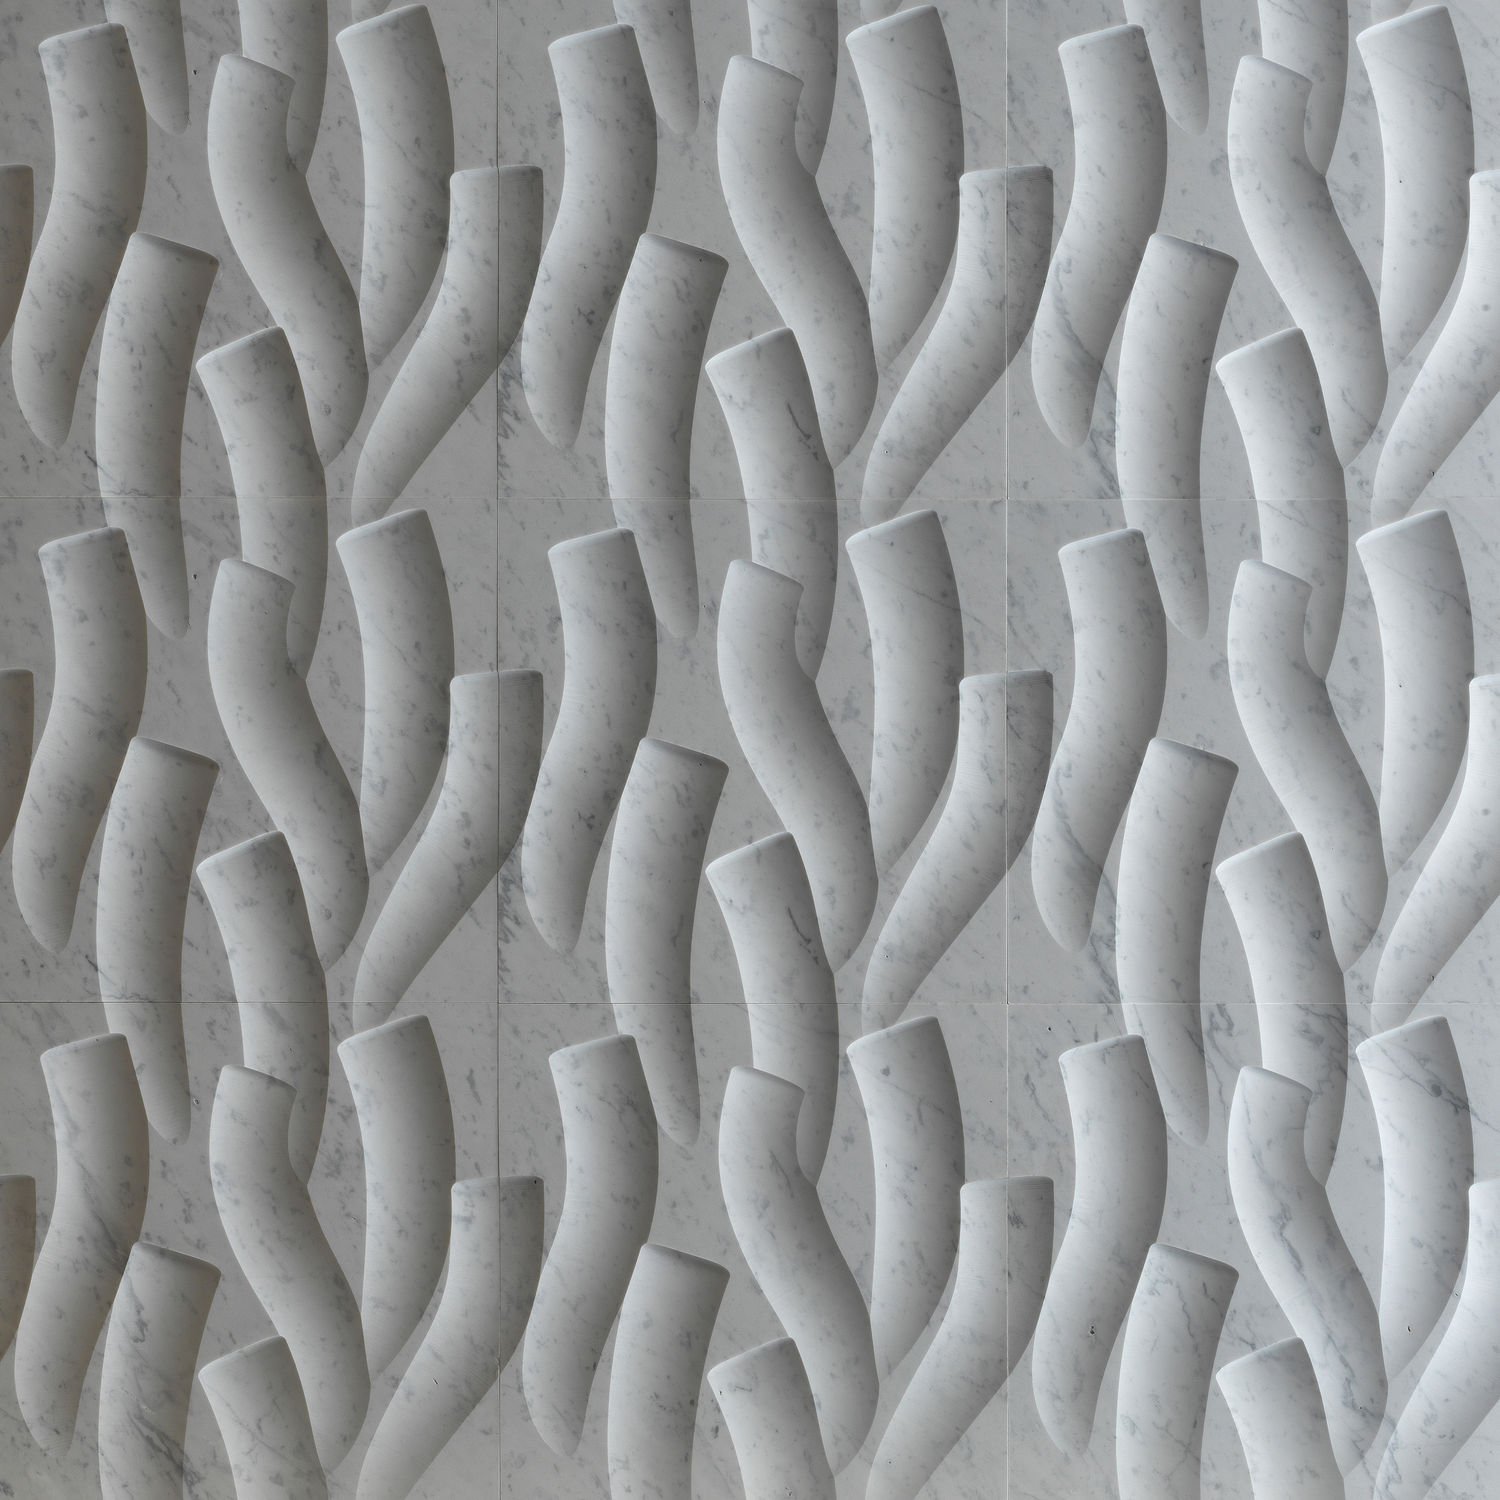 decorative wall panels design inarace - Decorative Wall Panels